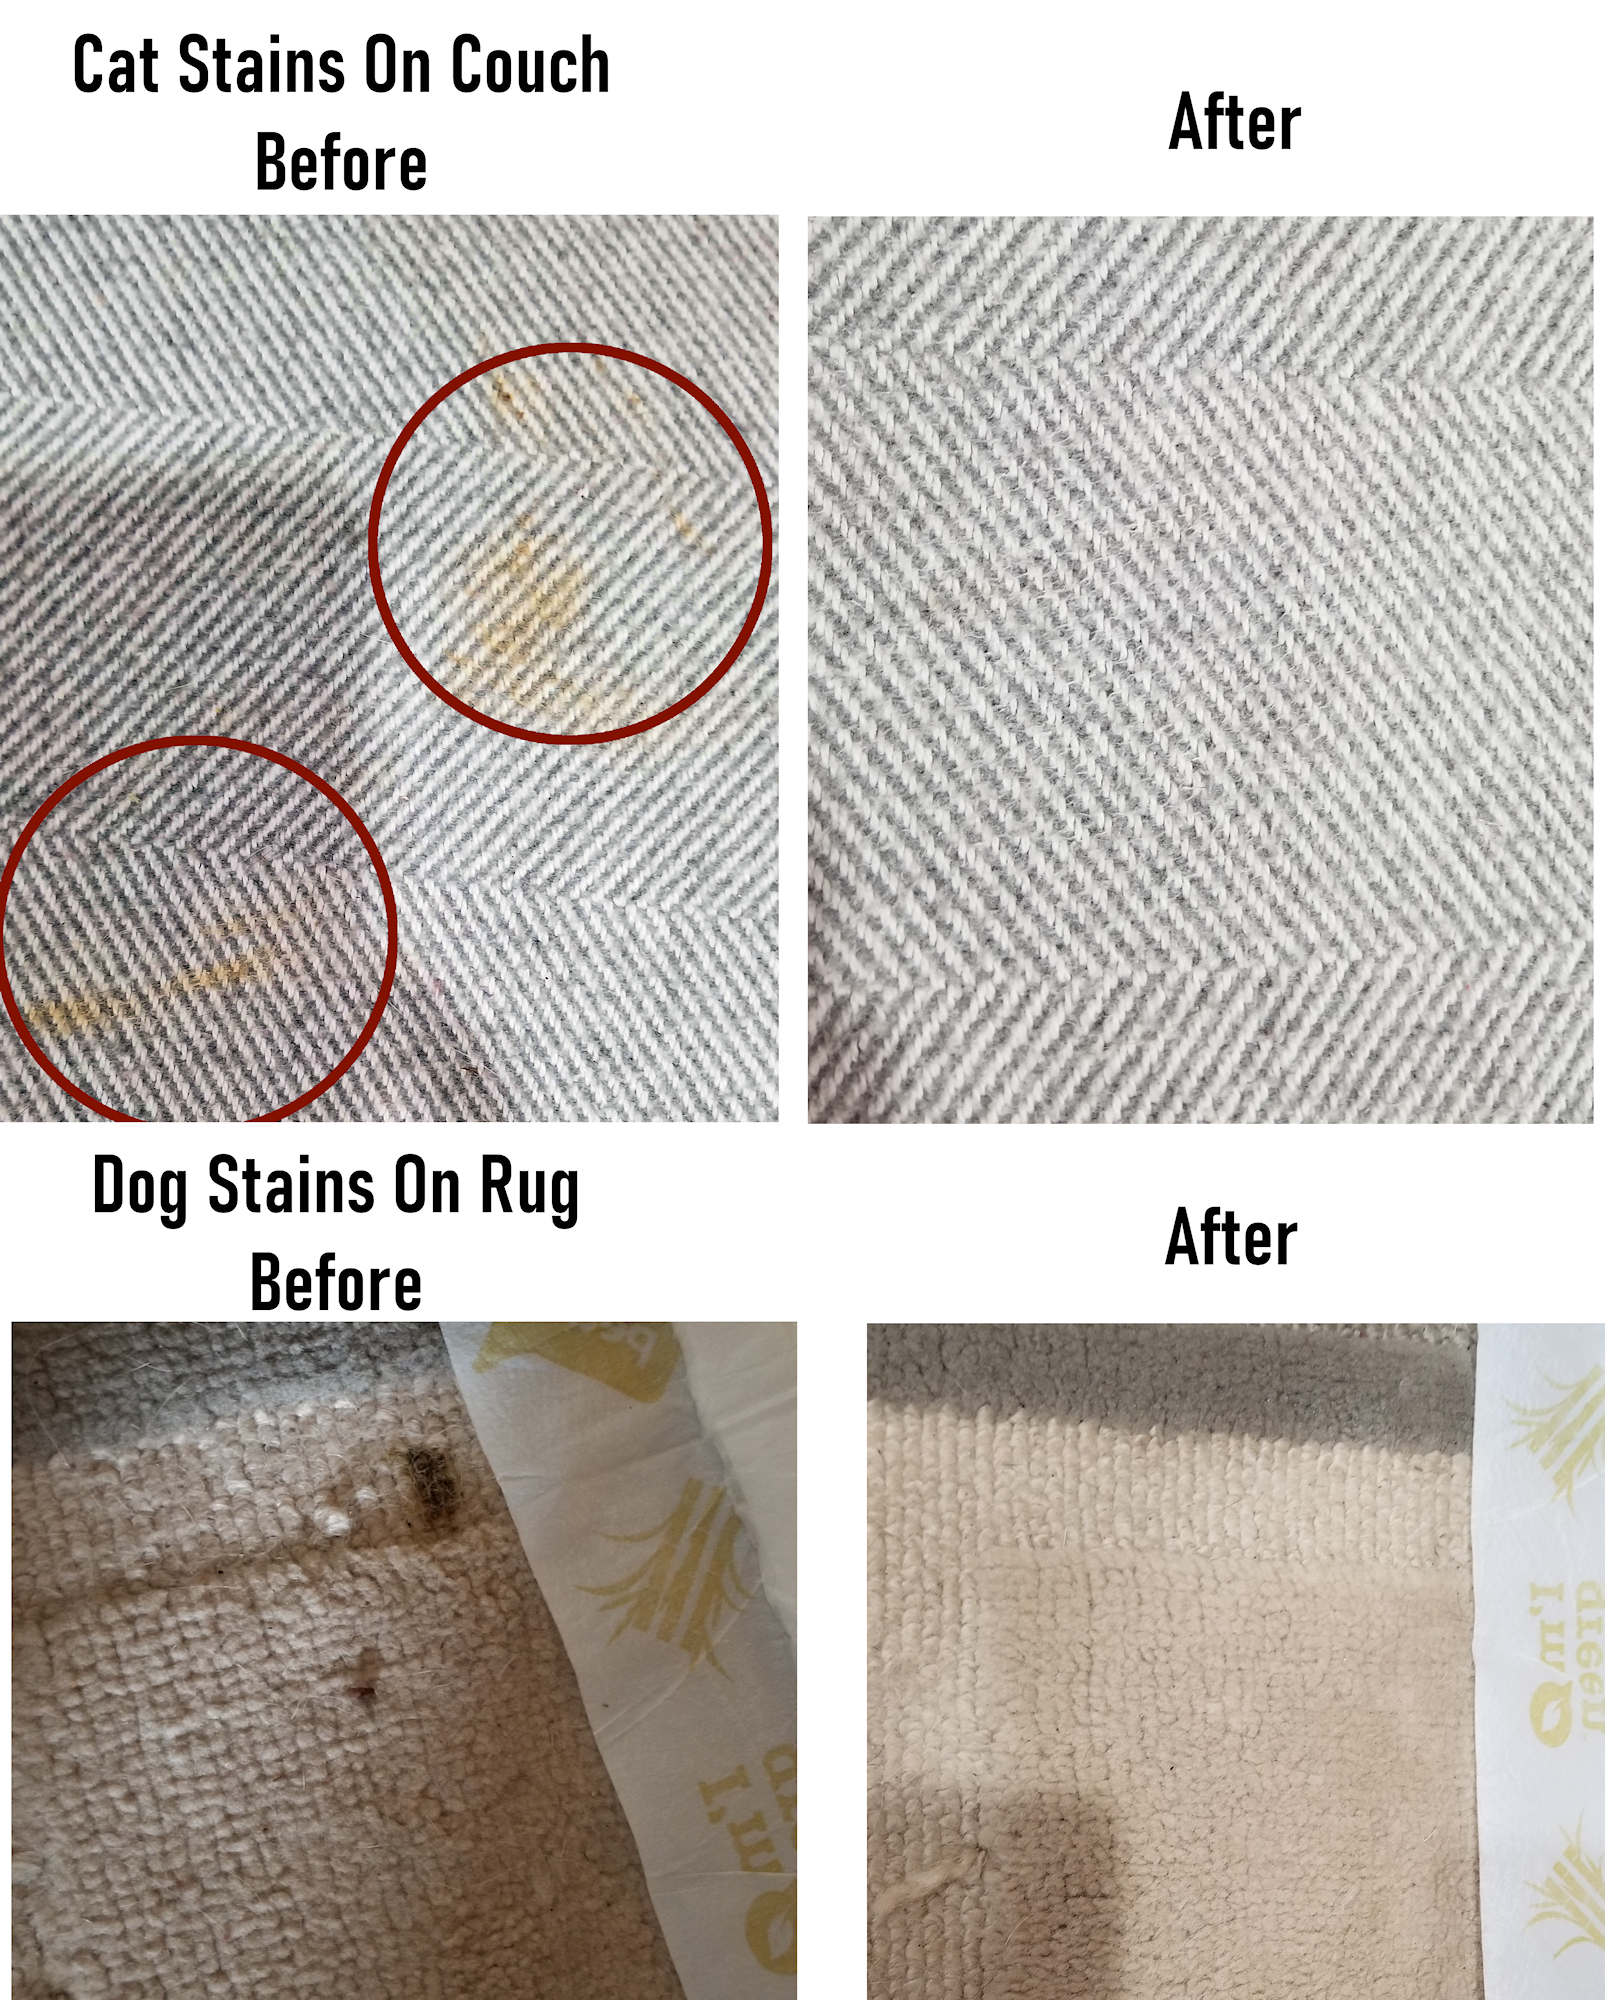 Cat stain cleaner spray